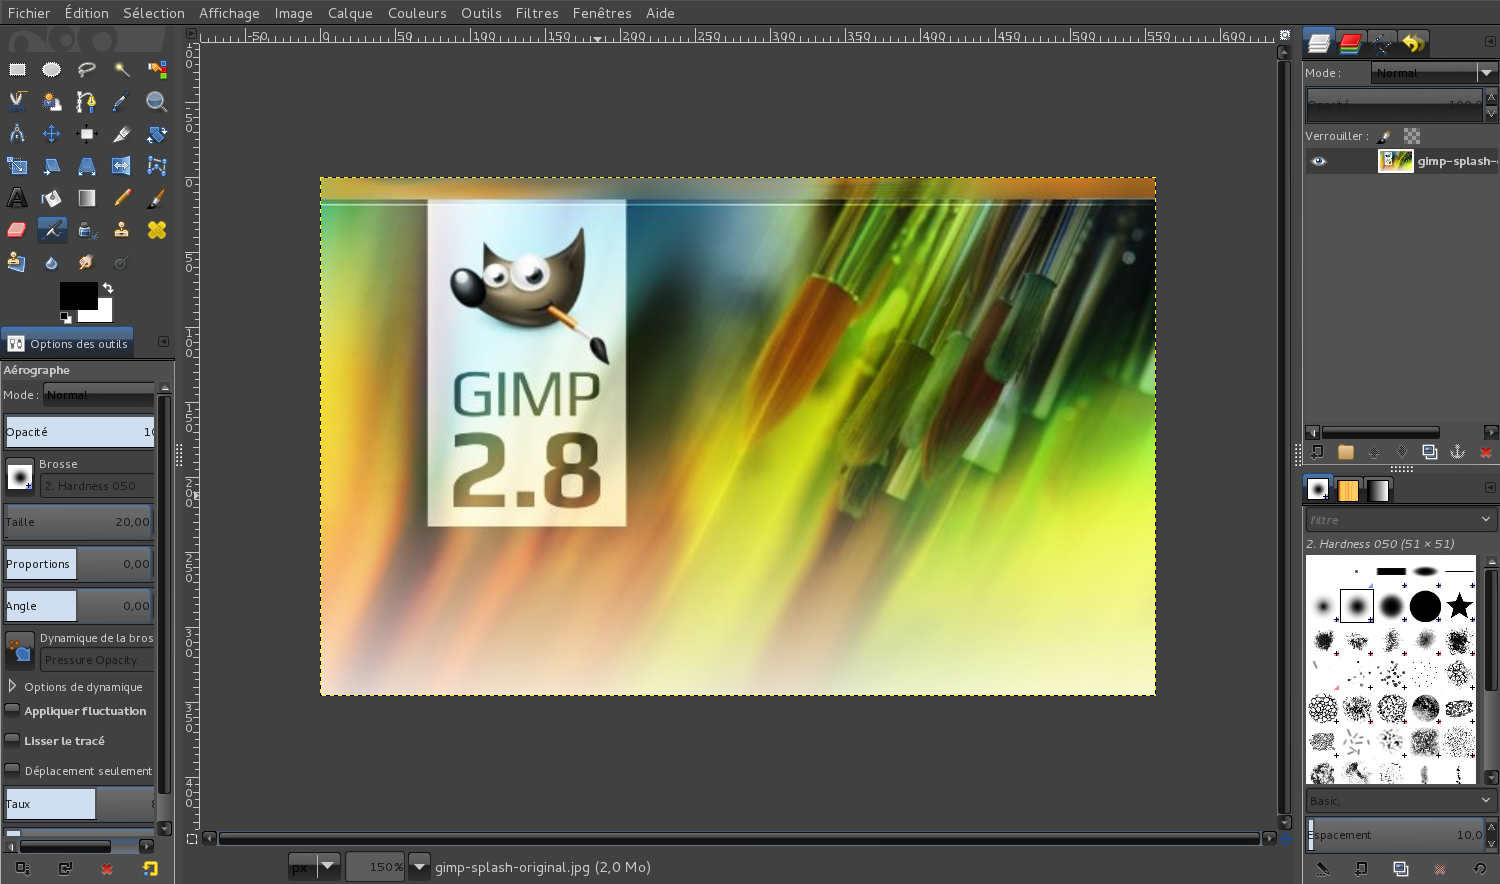 10 Reasons GIMP is Better Than Photoshop - Light Stalking